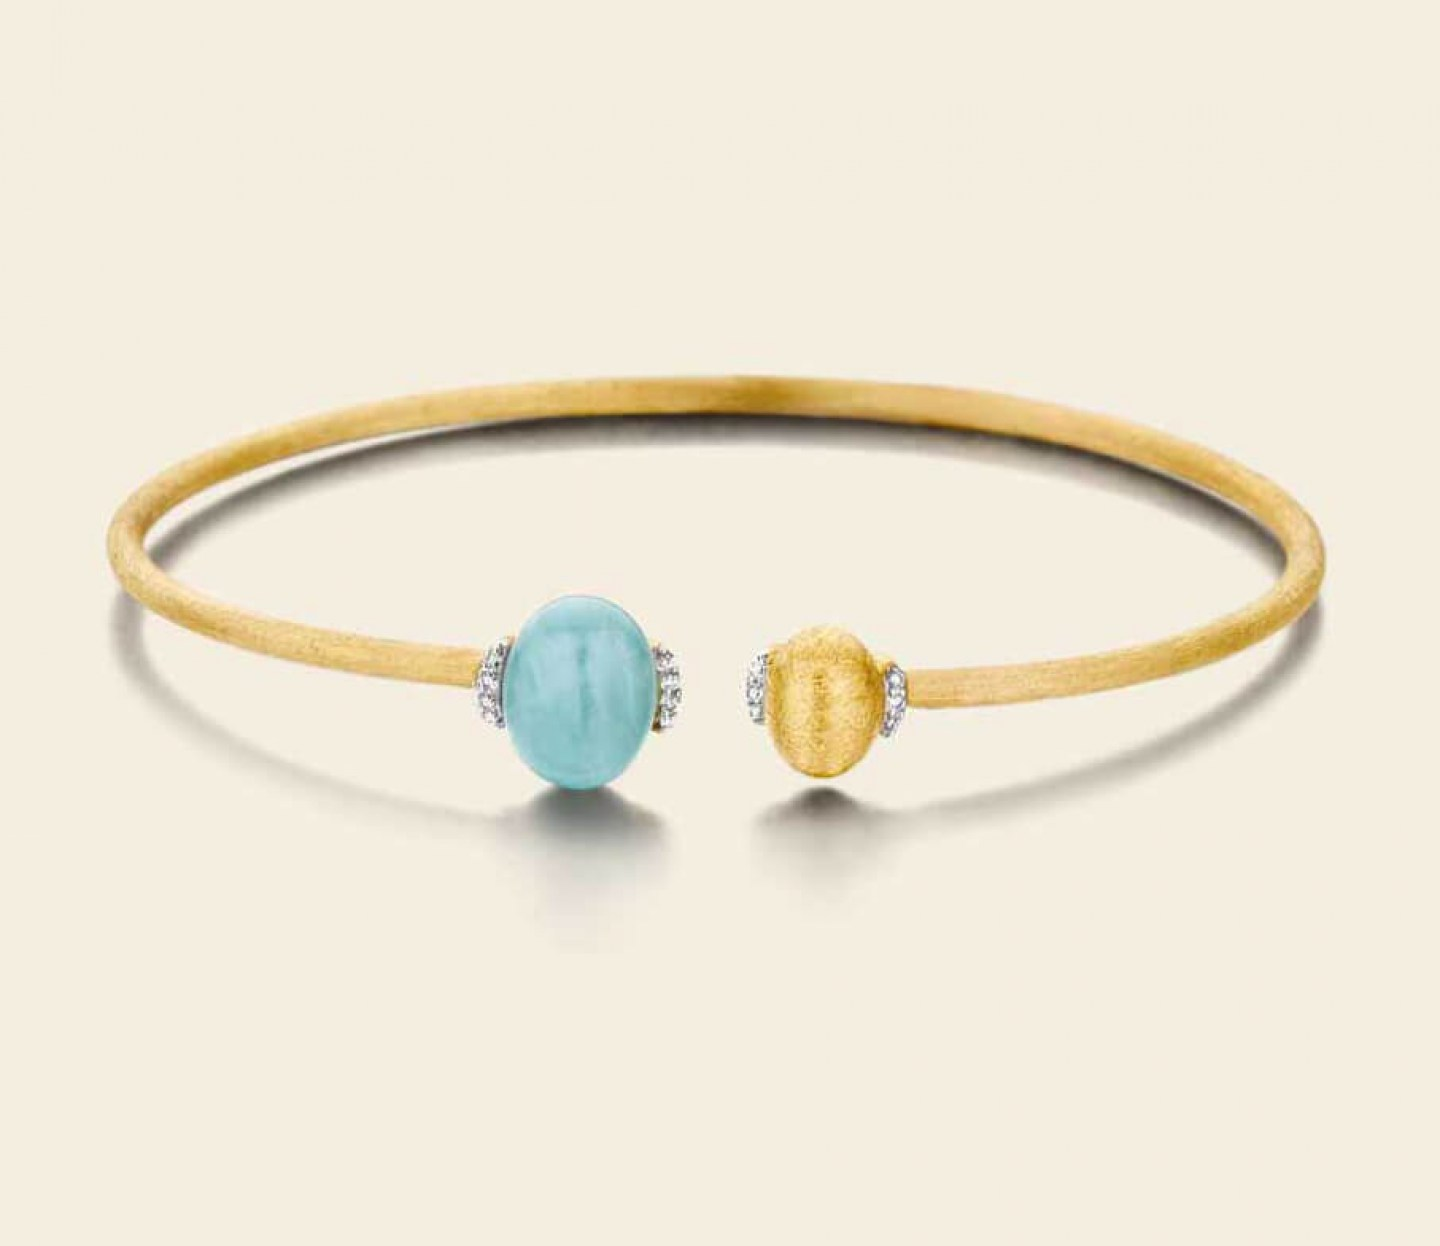 Nanis, Dancing in the Rain Bracelet in yellow gold K18 with diamonds and precious stones, NaniB1